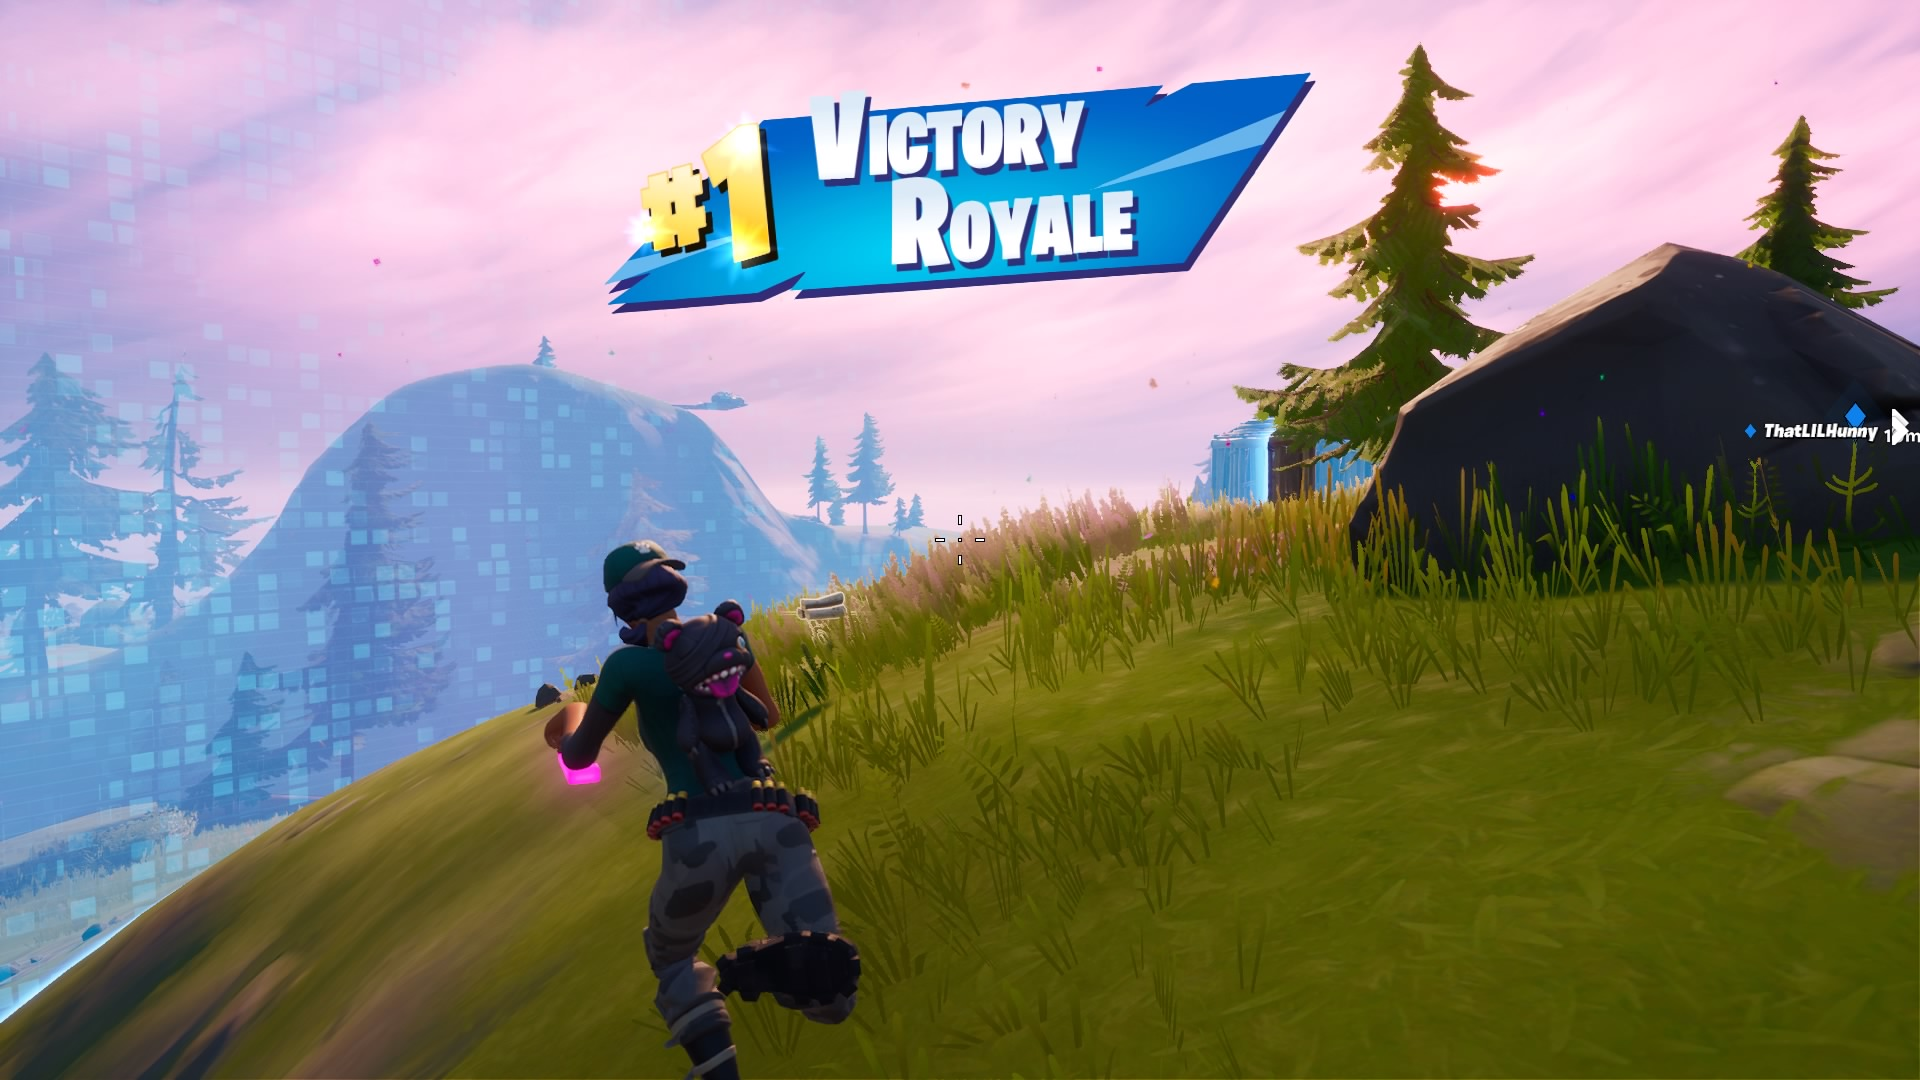 fortnite victory royale 71510